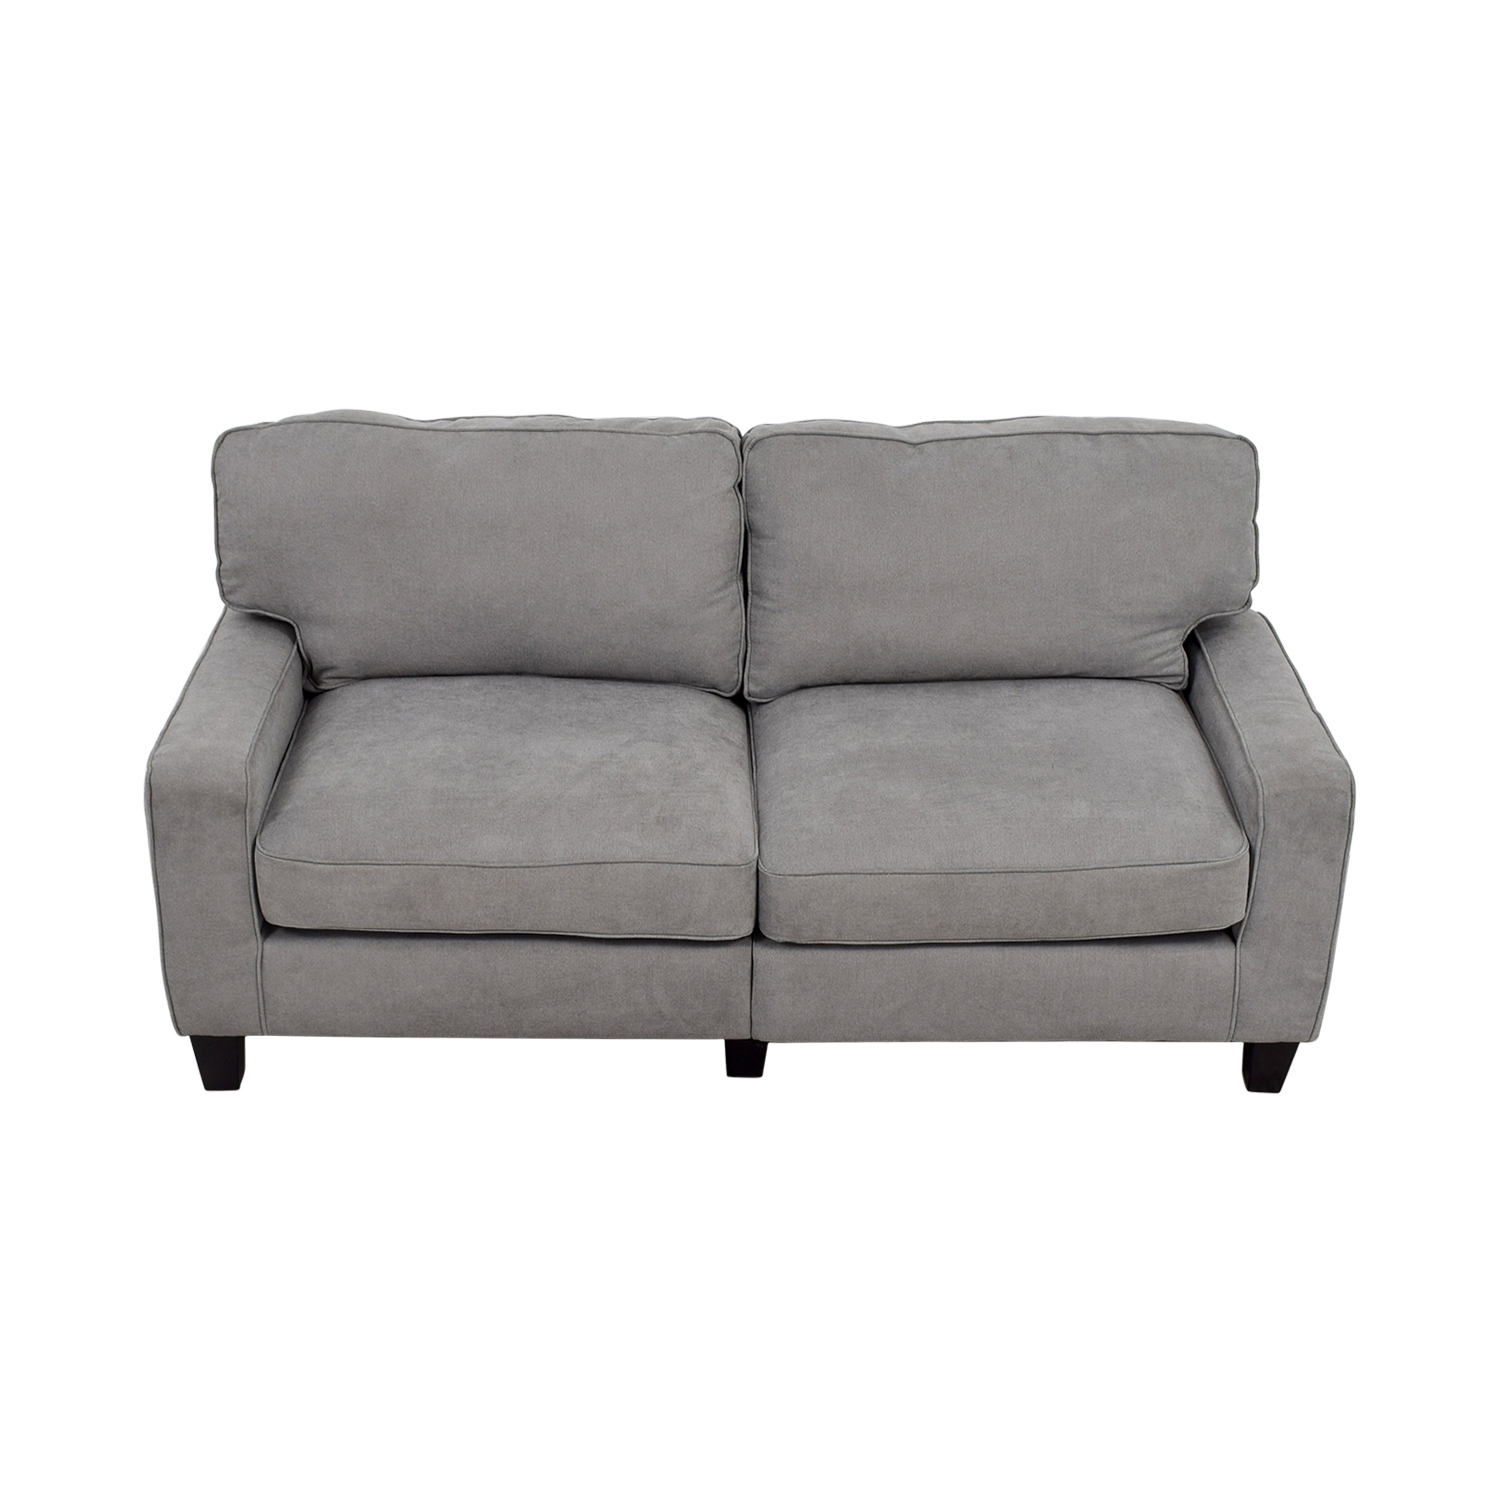 Serta Serta RTA Palisades Grey Sofa for sale